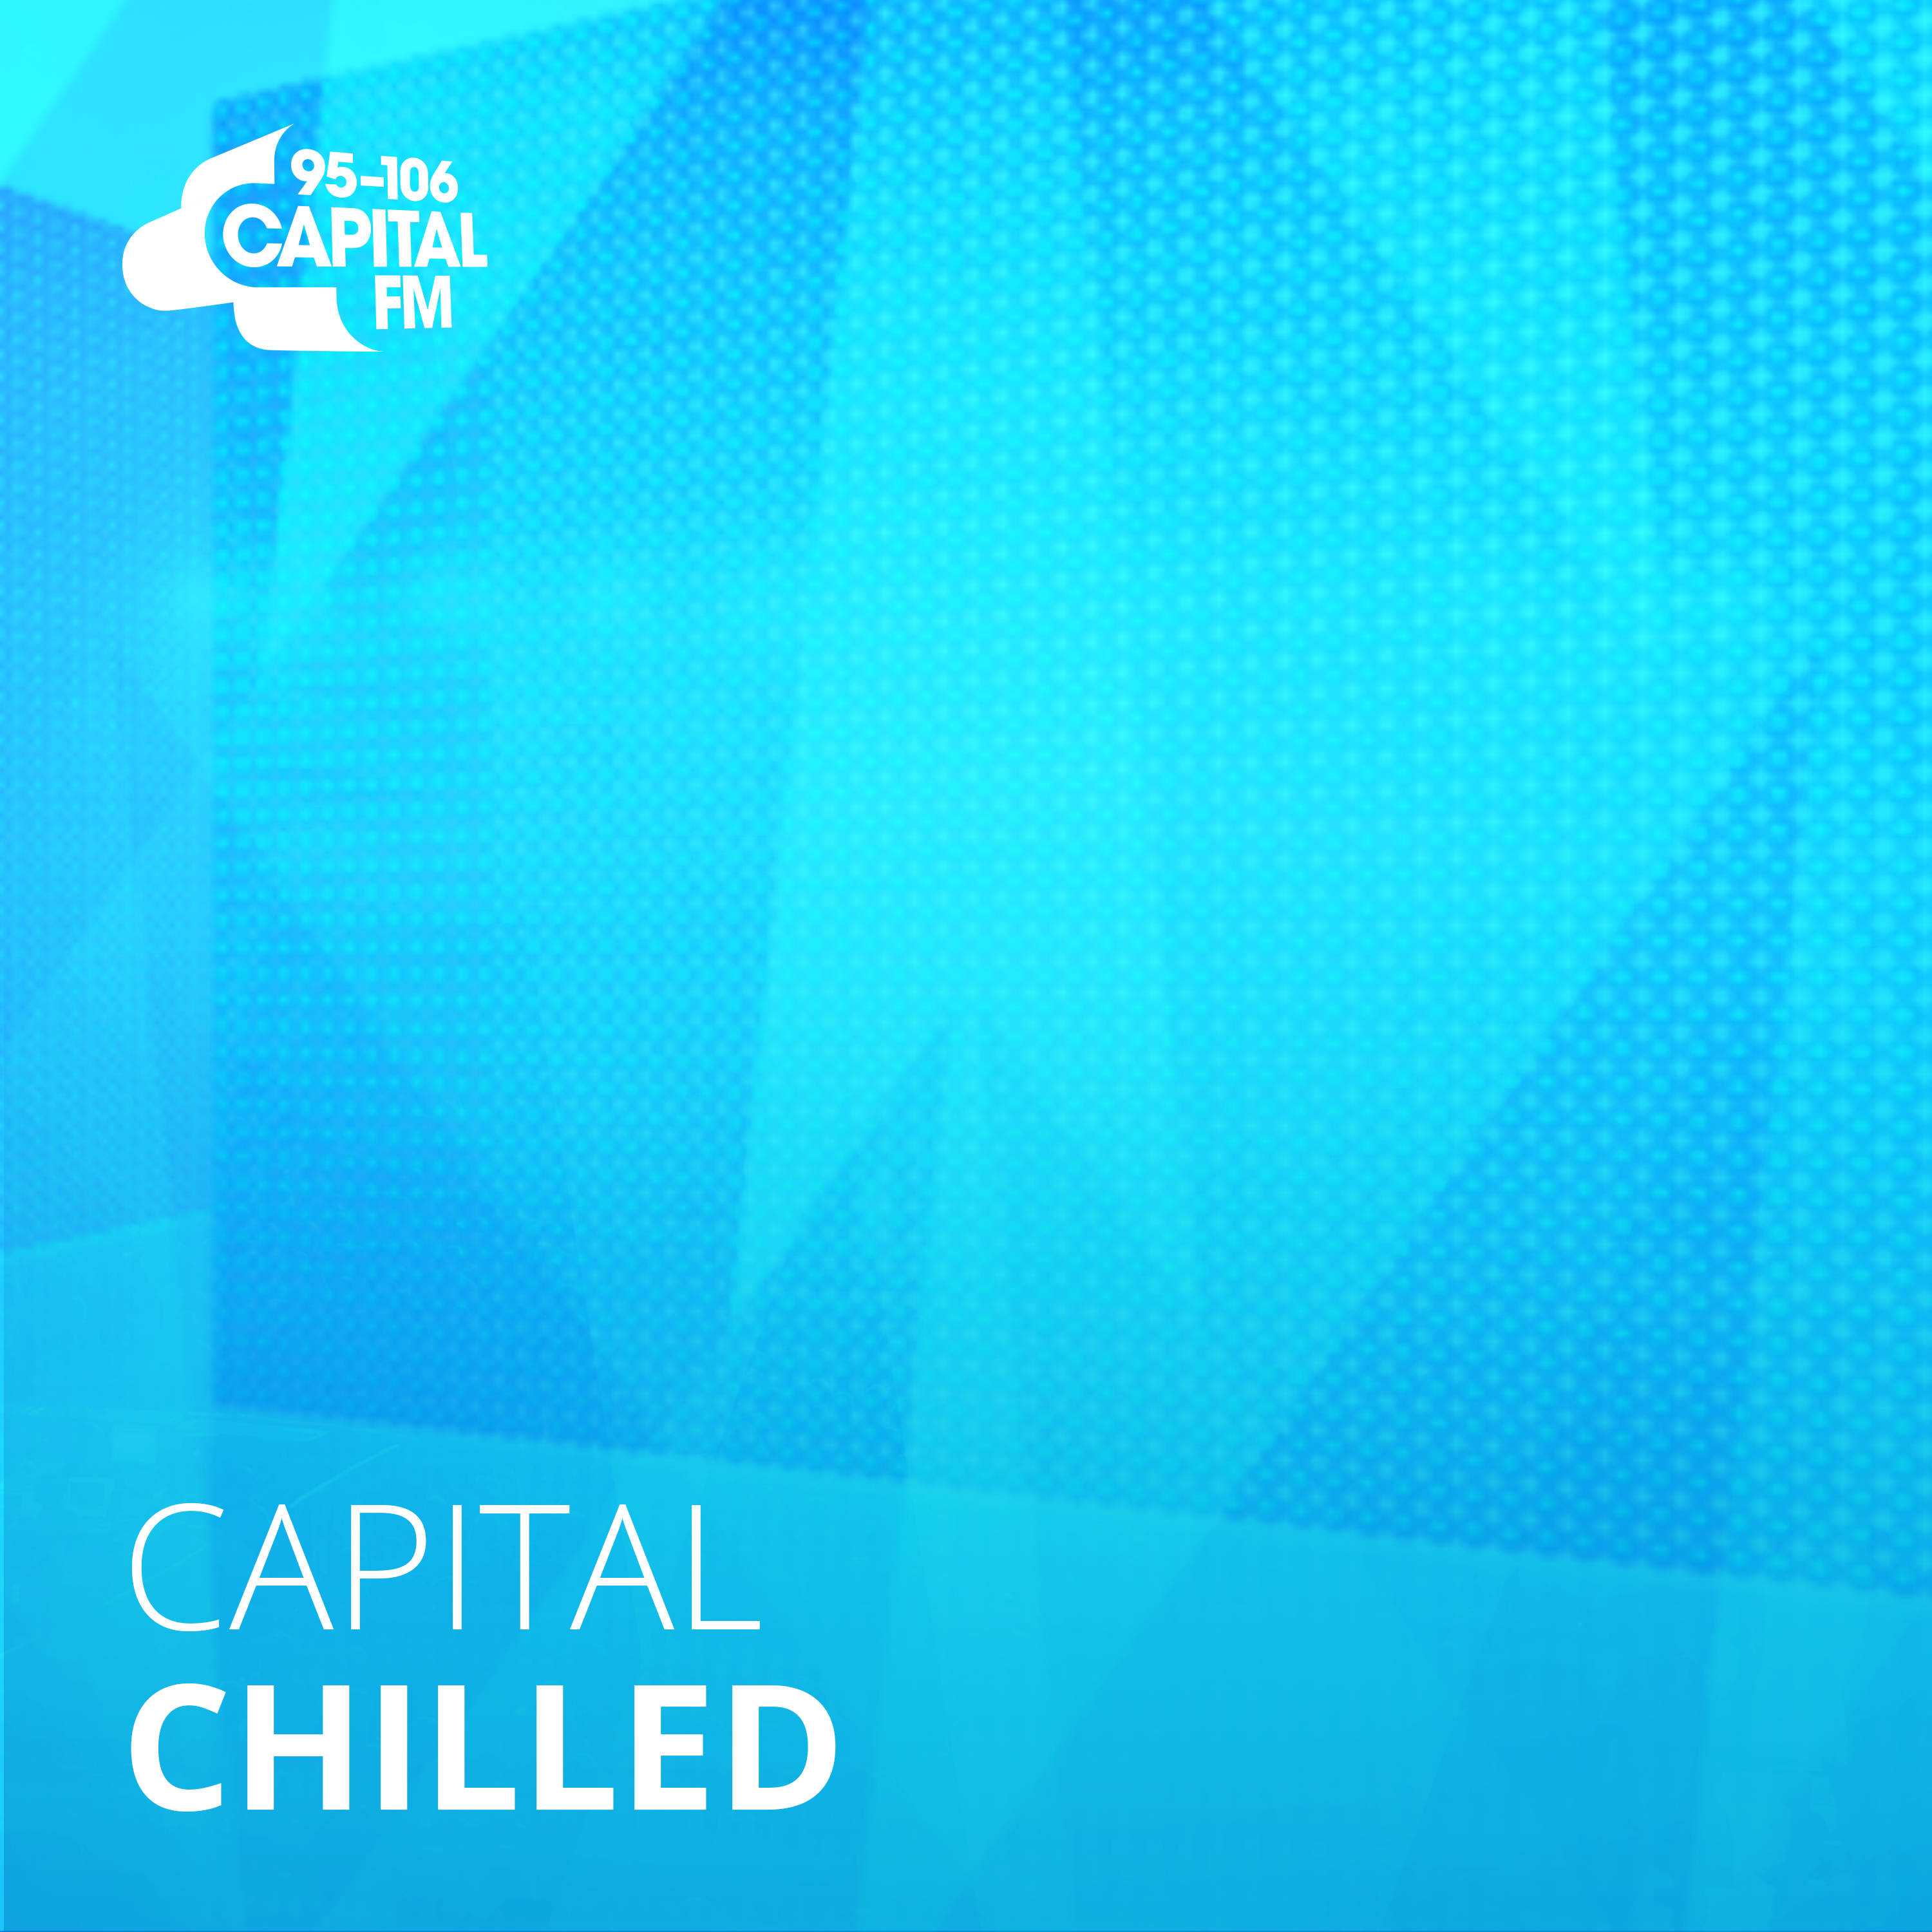 Capital Chilled image